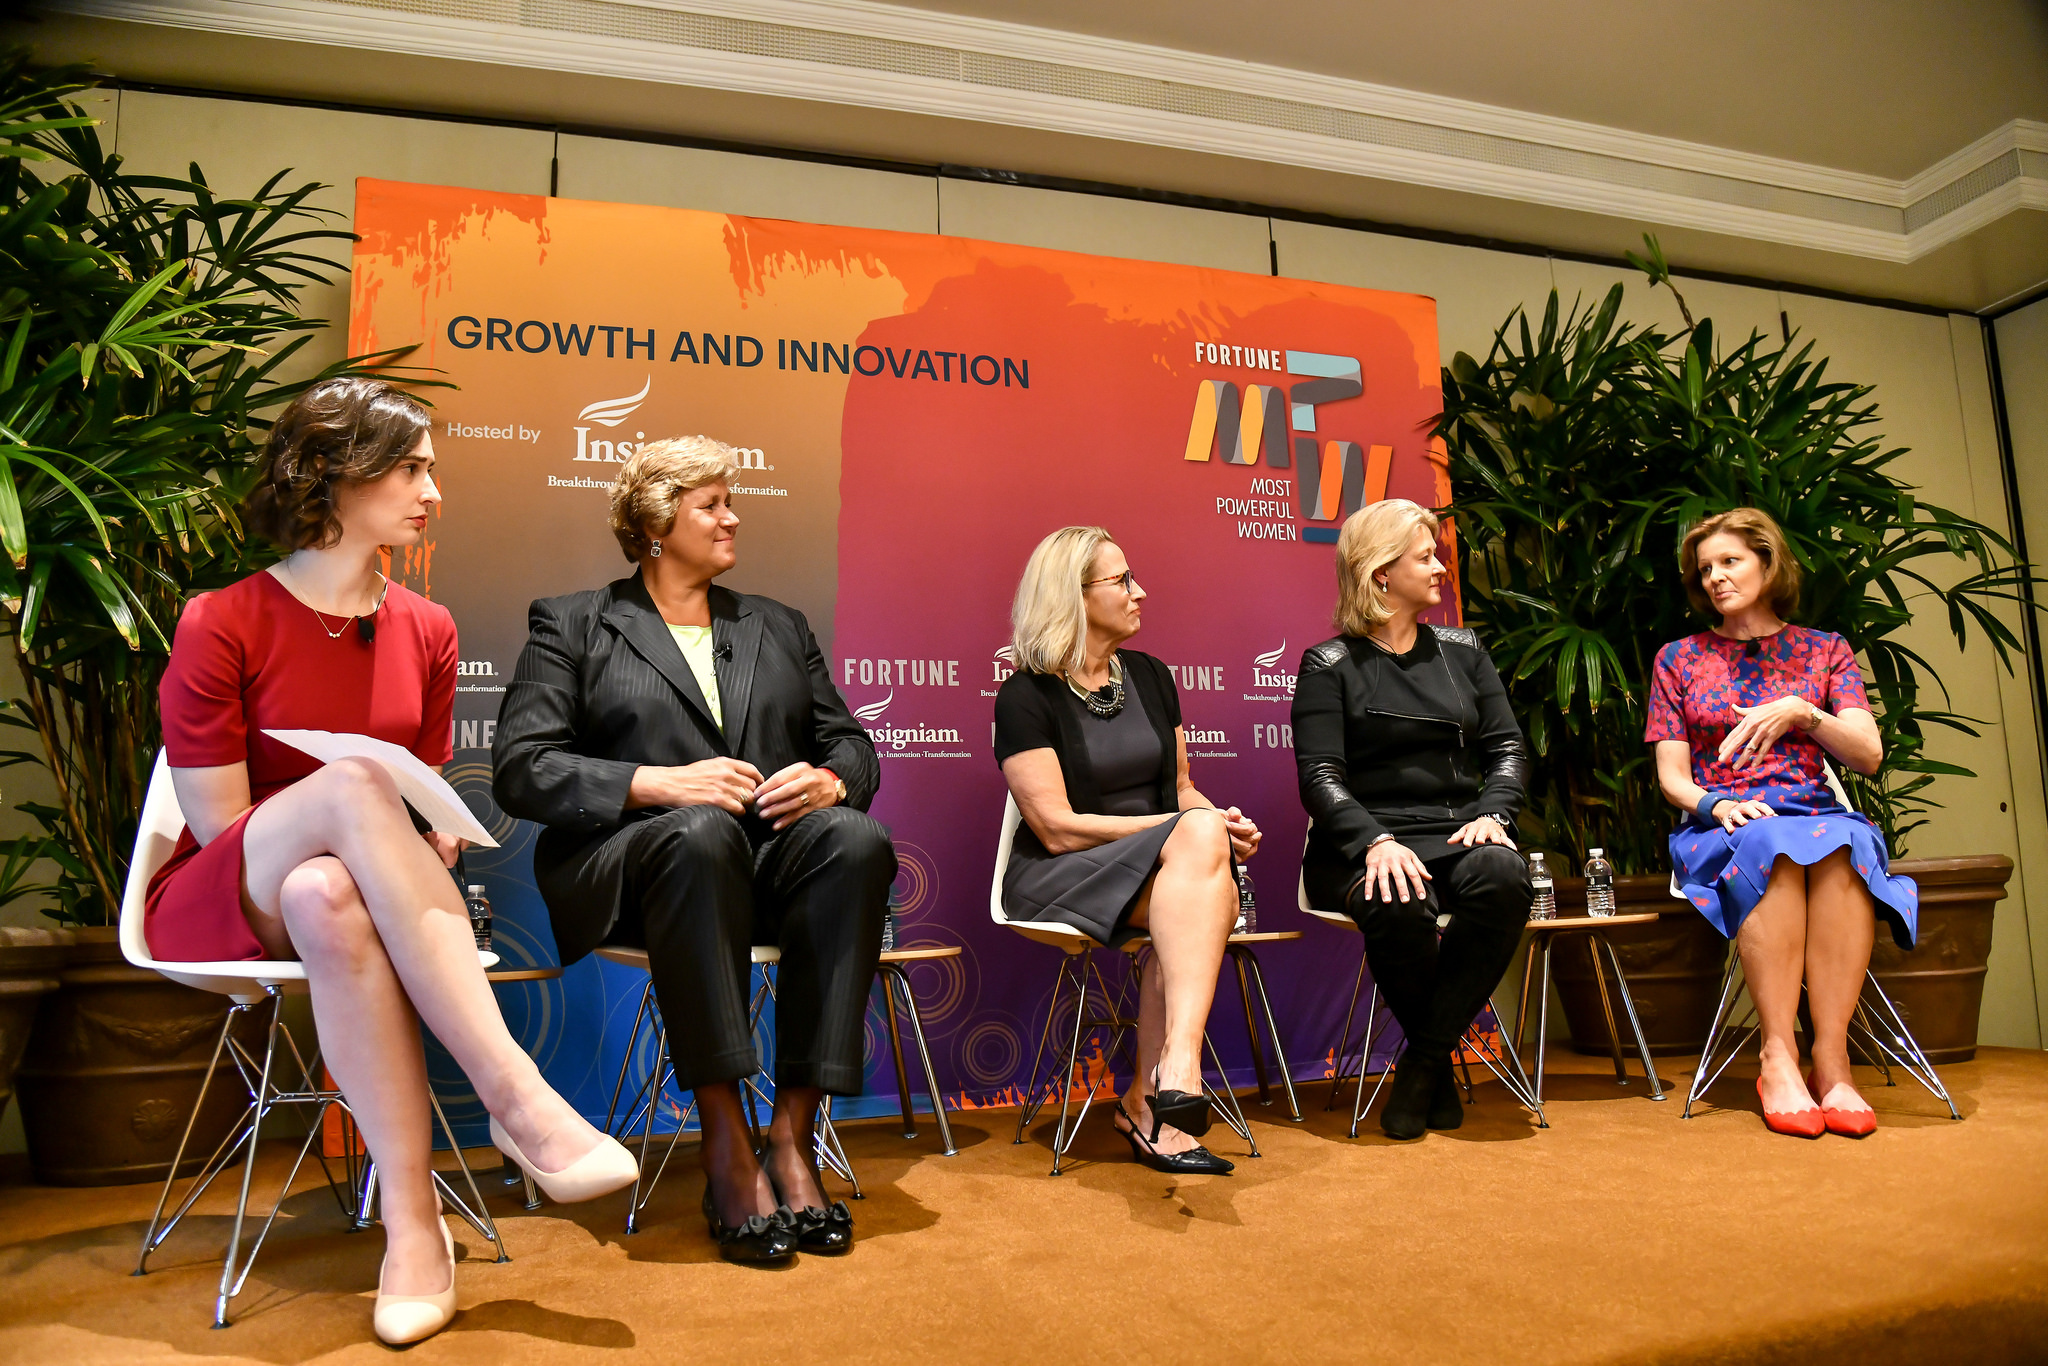 Left to right: Beth Kowitt of Fortune, Gail Boudreaux of Anthem, Michele Buck of the Hershey Co., Terri Kallsen of Charles Schwab & Co., and Deanna Mulligan of the Guardian Life Insurance Co. at the 2018 Fortune Most Powerful Women Summit in Laguna Niguel, Calif.